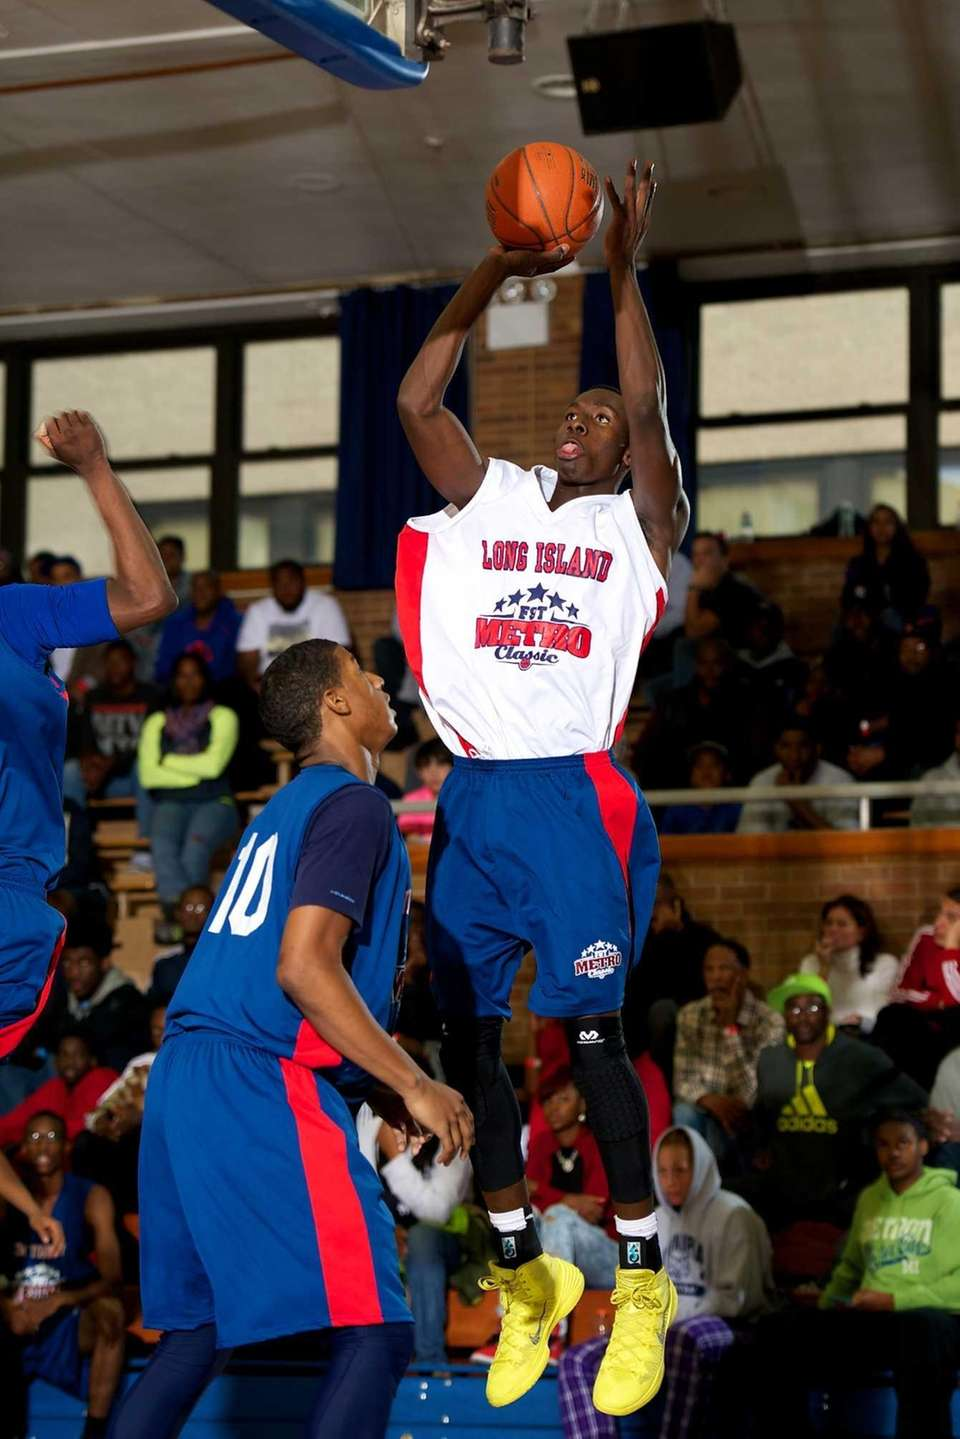 Mike Nzei, a Long Island All-Star forward from